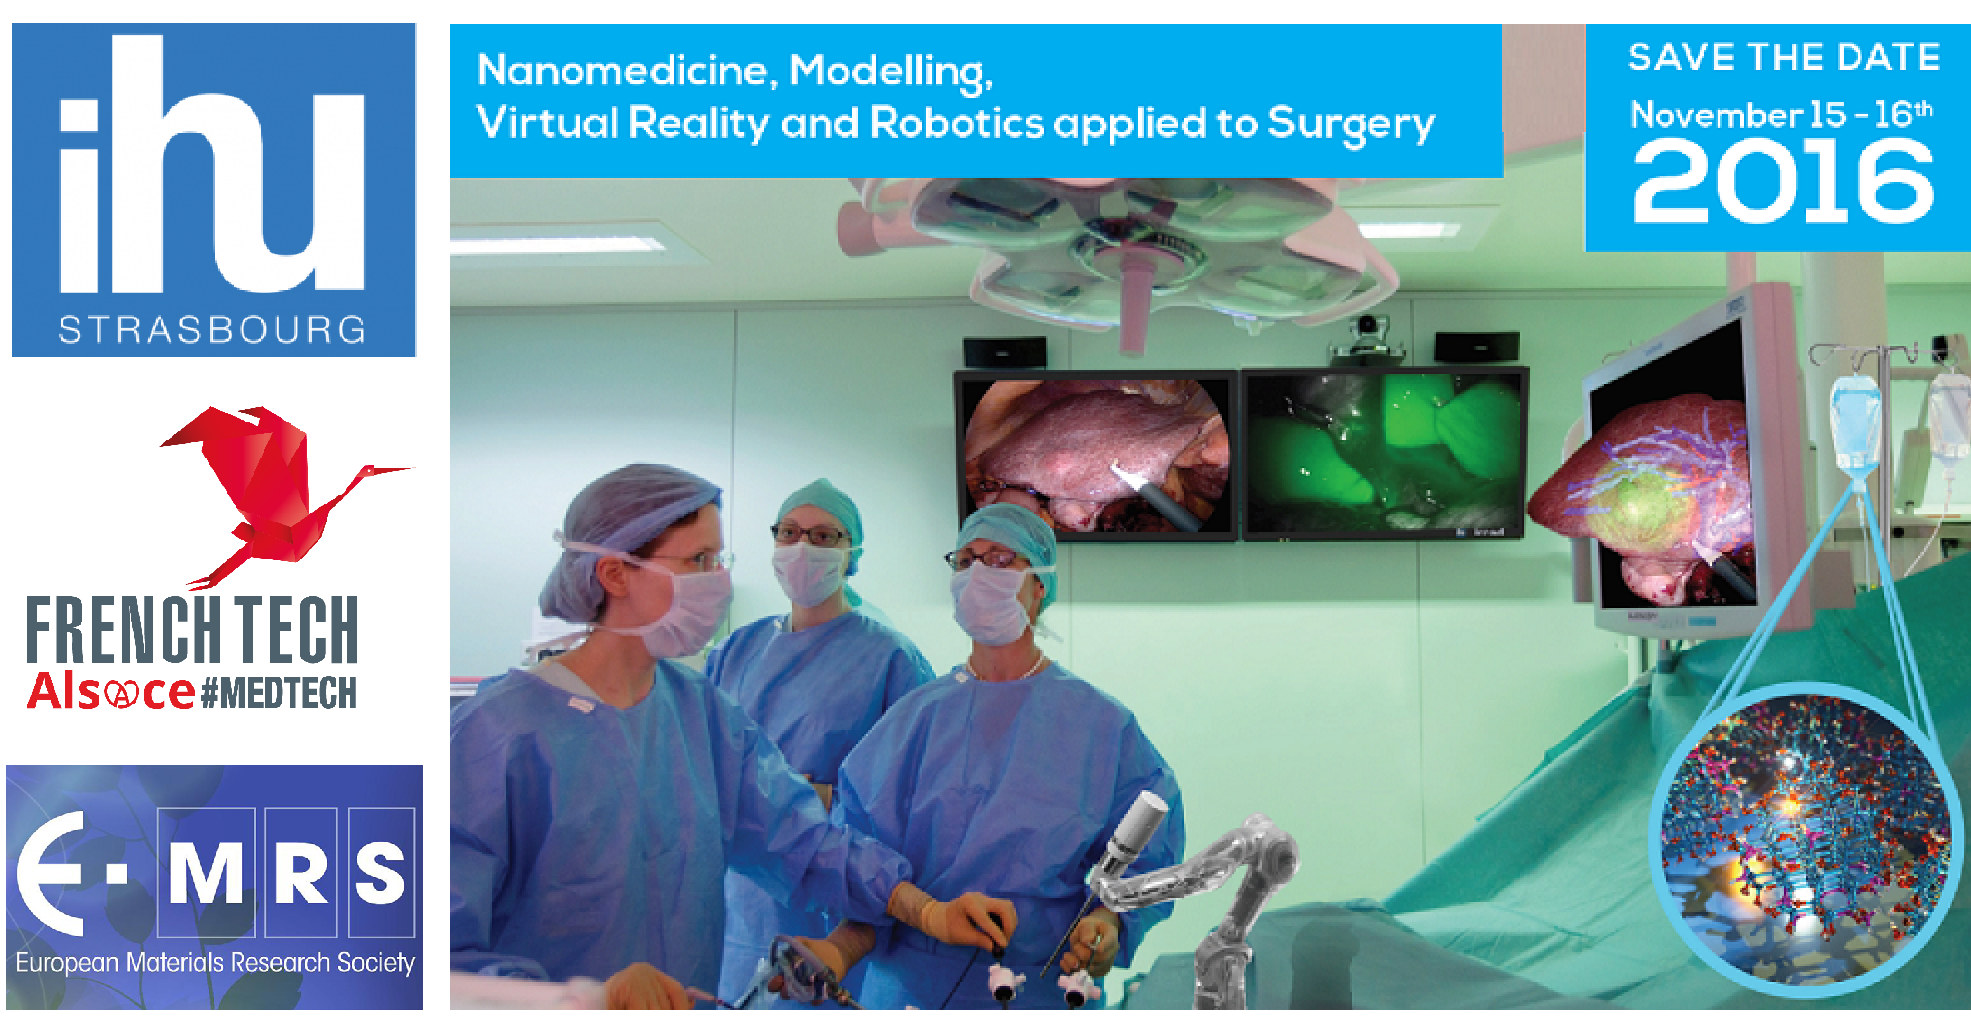 IHU Strasbourg - Nanomedicine, Modeling, Virtual Reality and Robotics applied to Surgery 2016